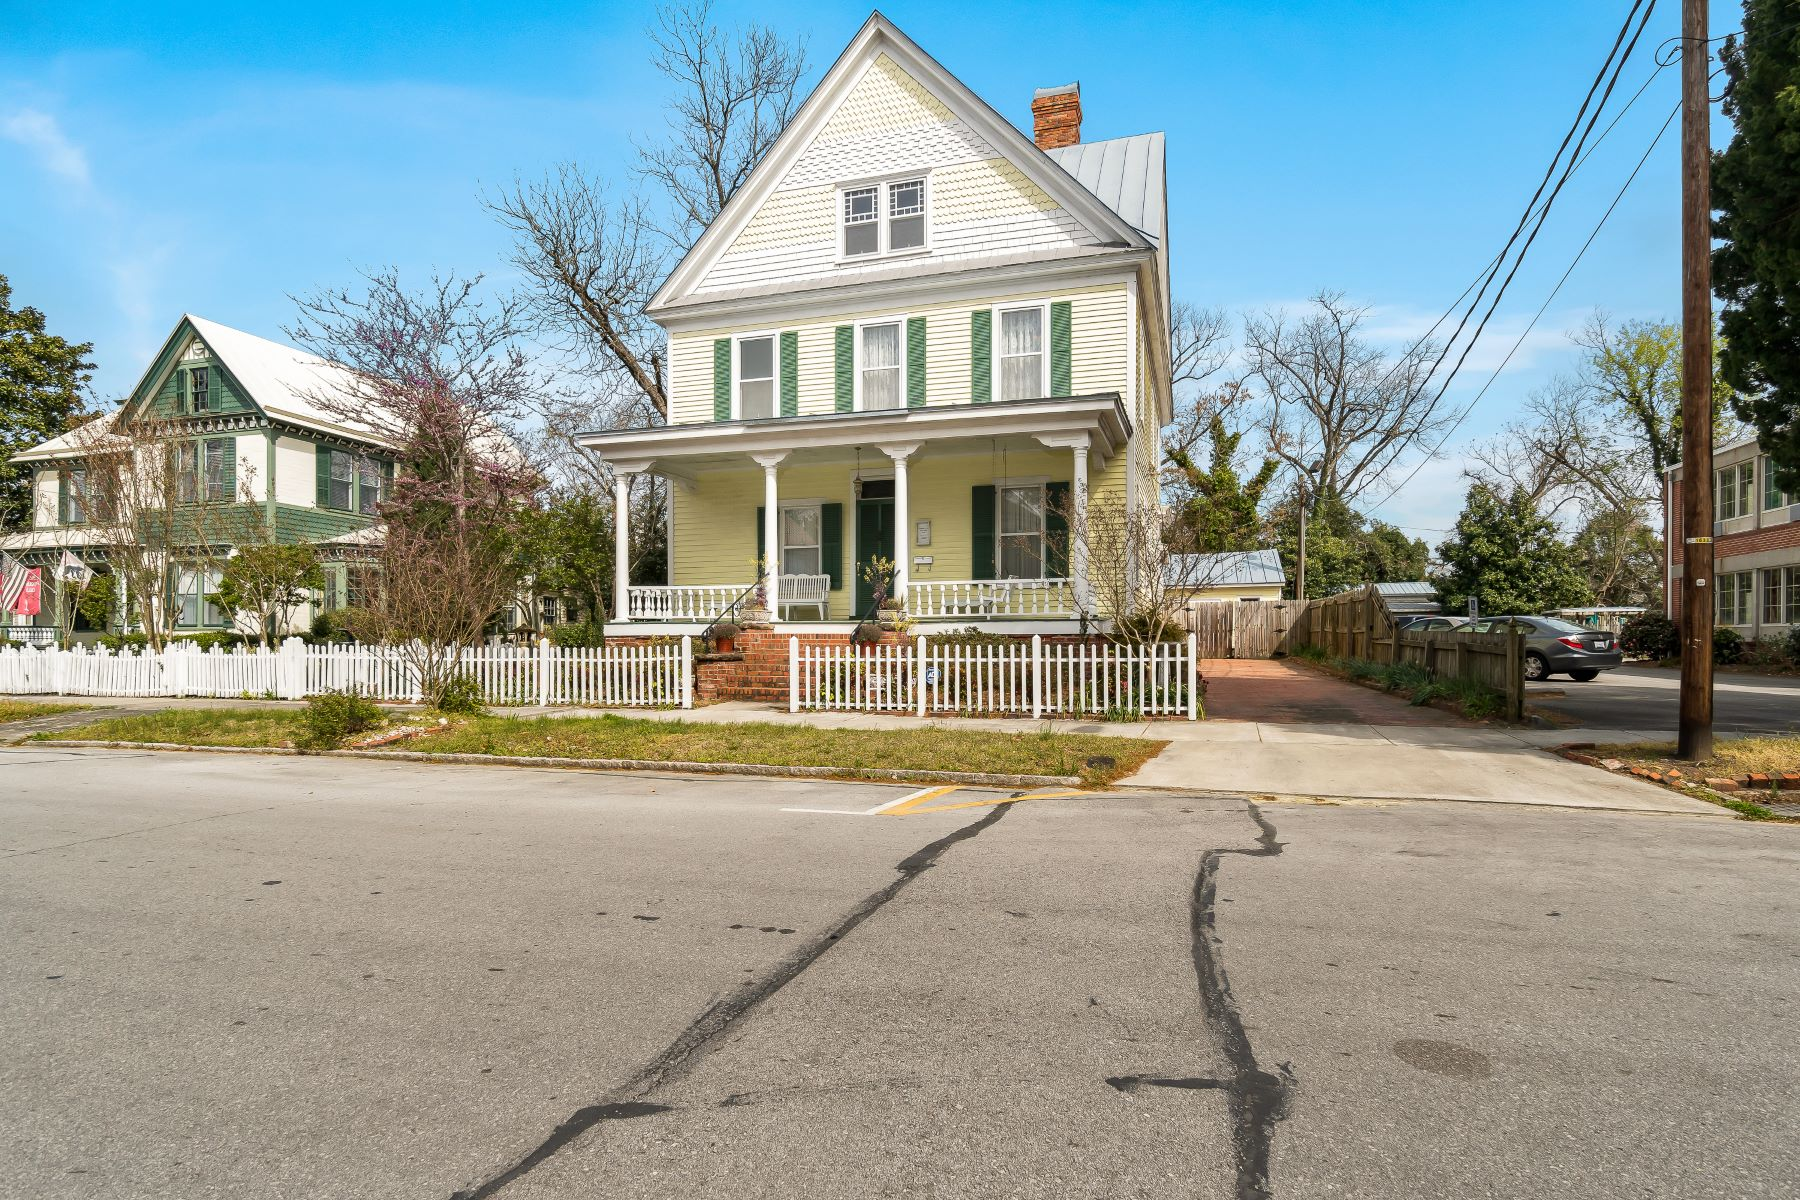 Single Family Home for Active at Impeccable Victorian Home in Historic District 512 Middle St. New Bern, North Carolina 28560 United States